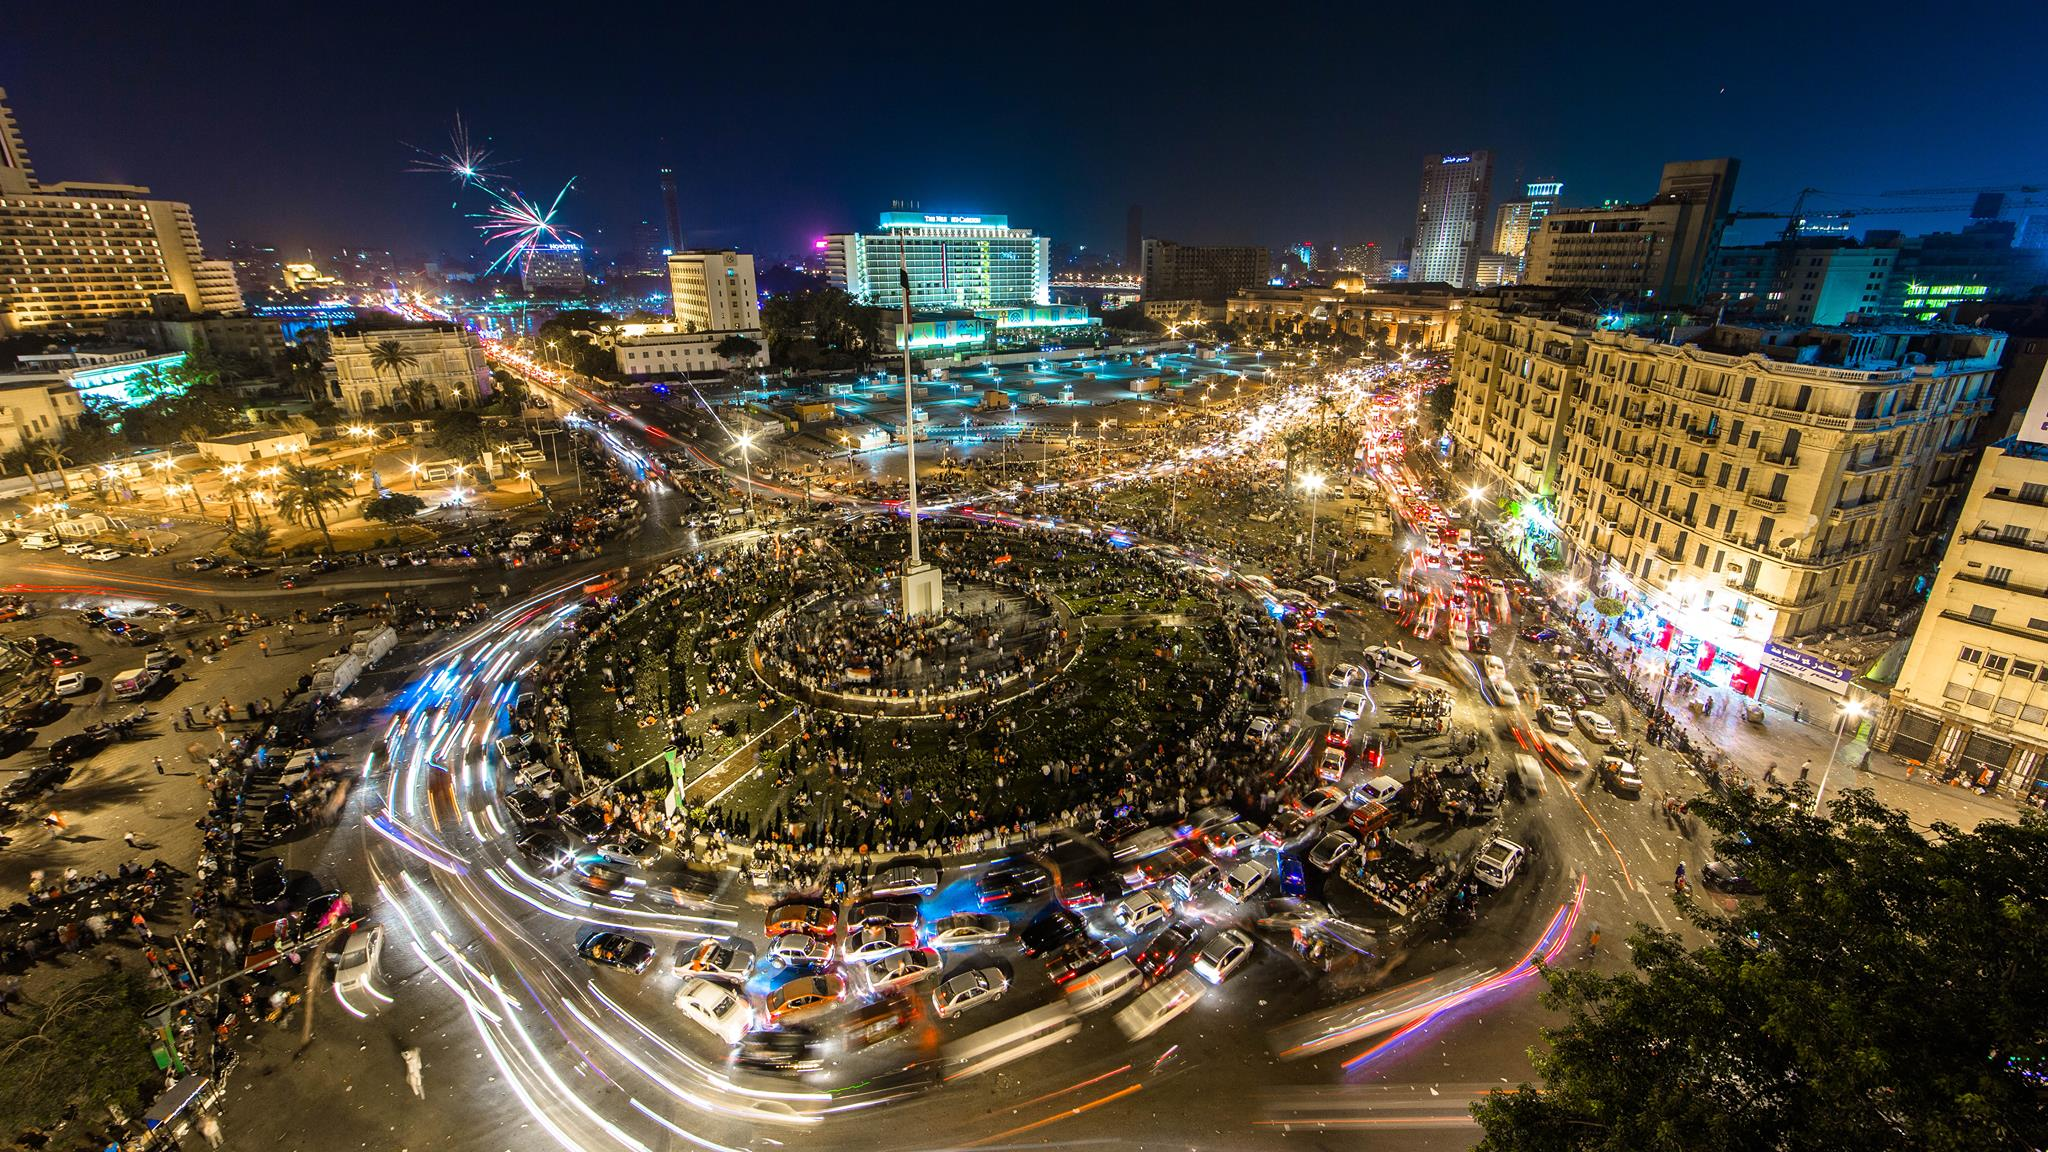 Tahrir Square in 2015. Credit: Hisham Moll